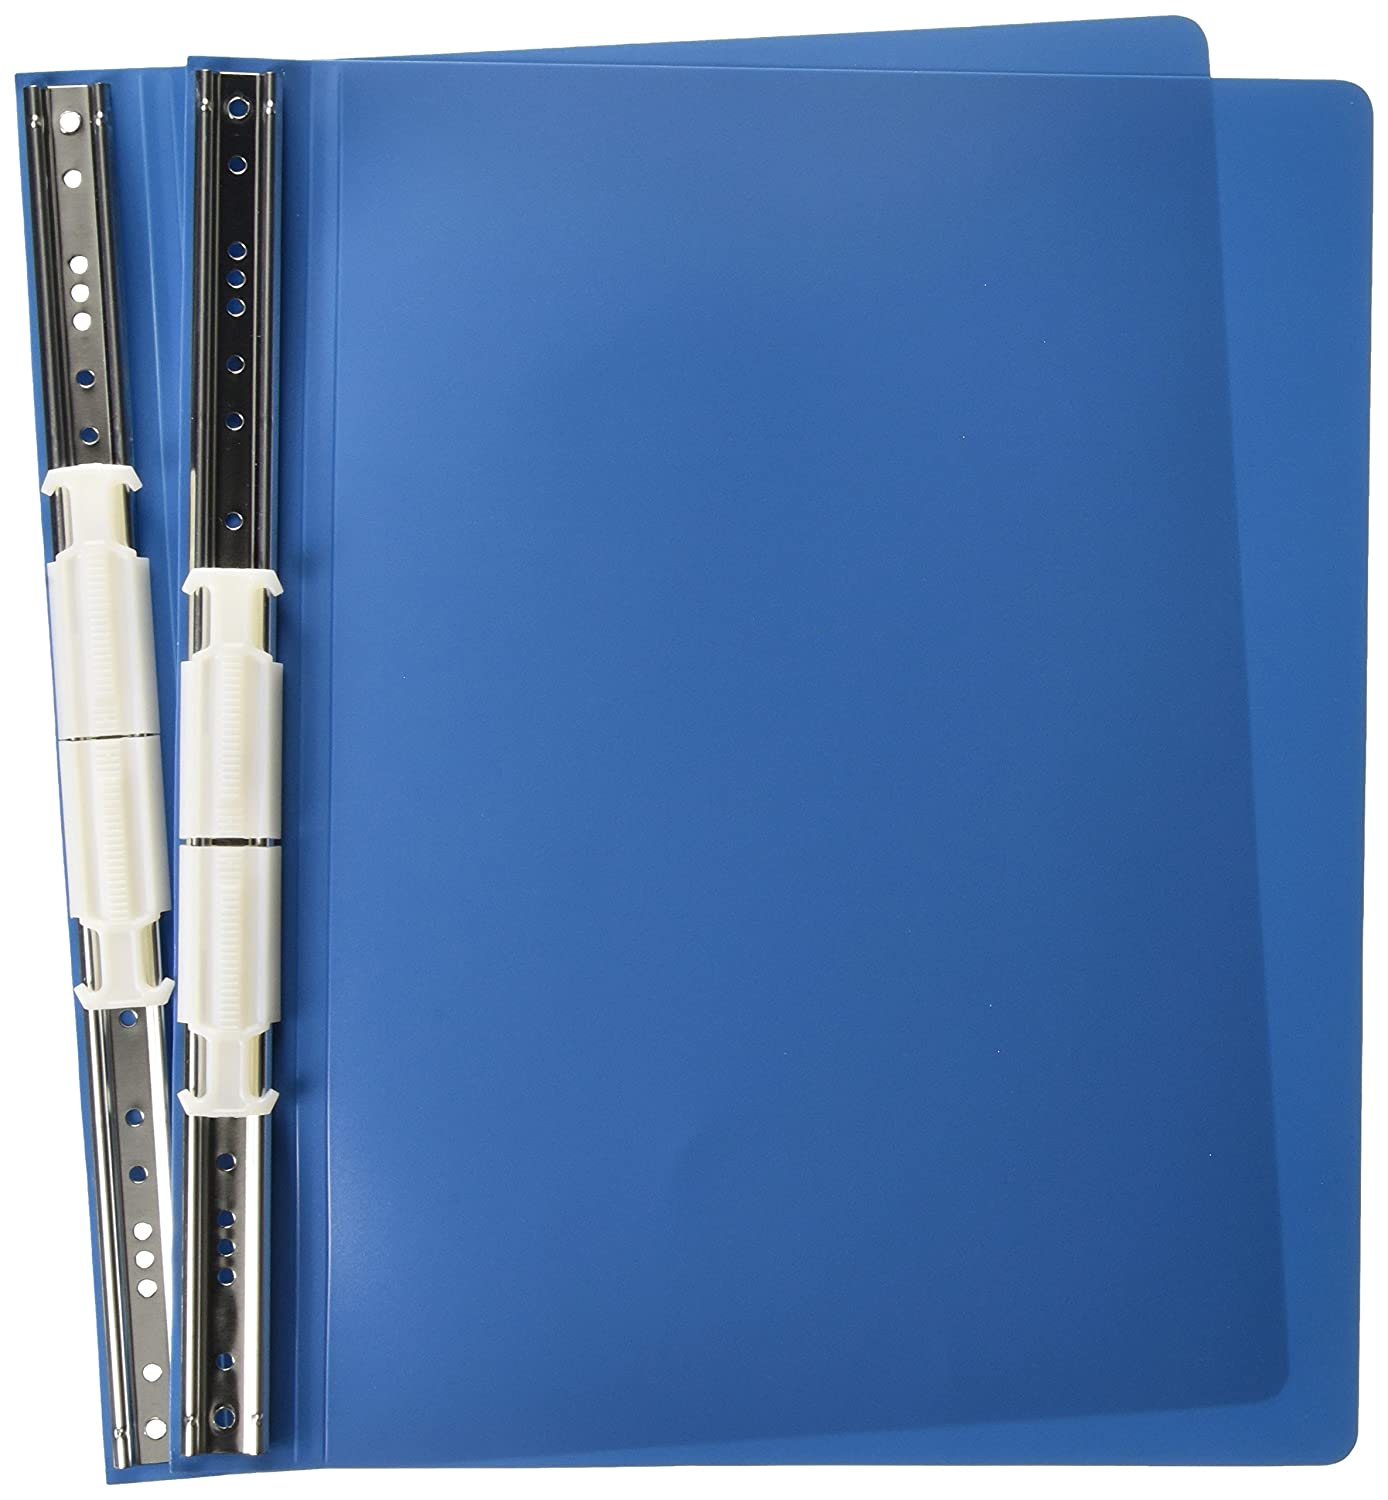 ACCO Hanging Data Binder with Accohide Covers, 12 x 8.5 Inches, Blue (56133) ACCO Brands Corporation